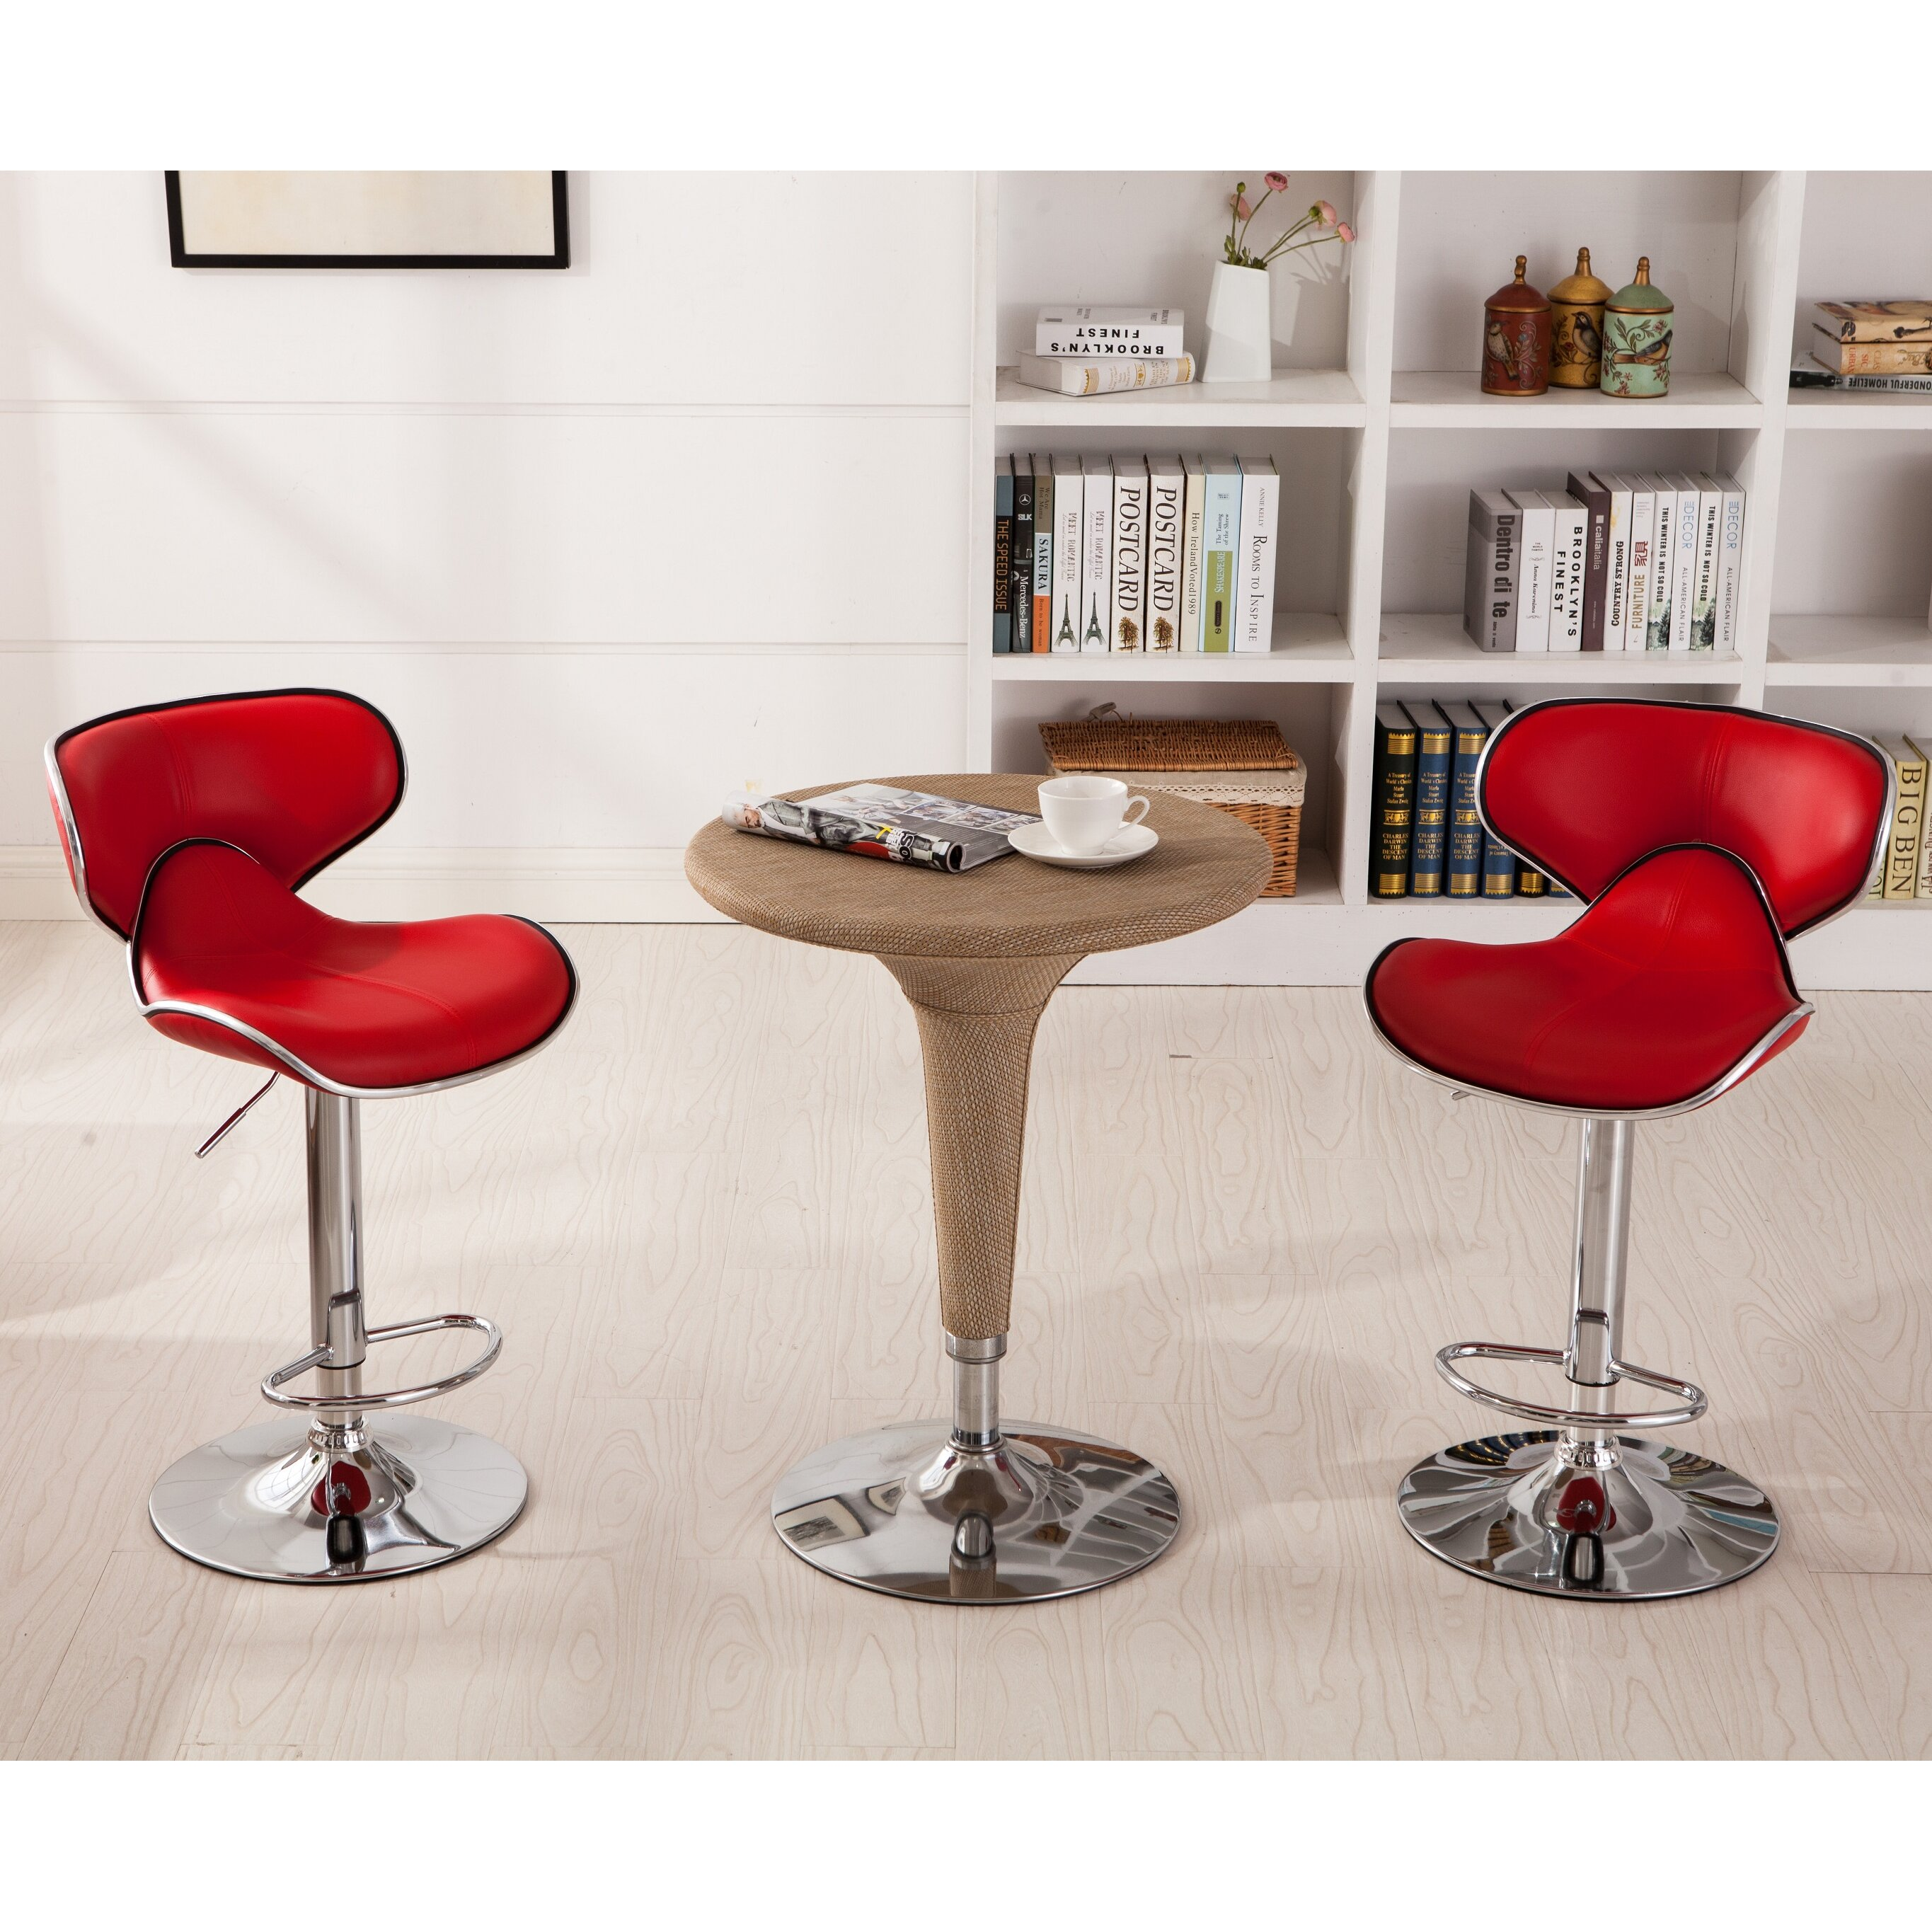 Wade Logan Harlow Adjustable Height Swivel Bar Stool